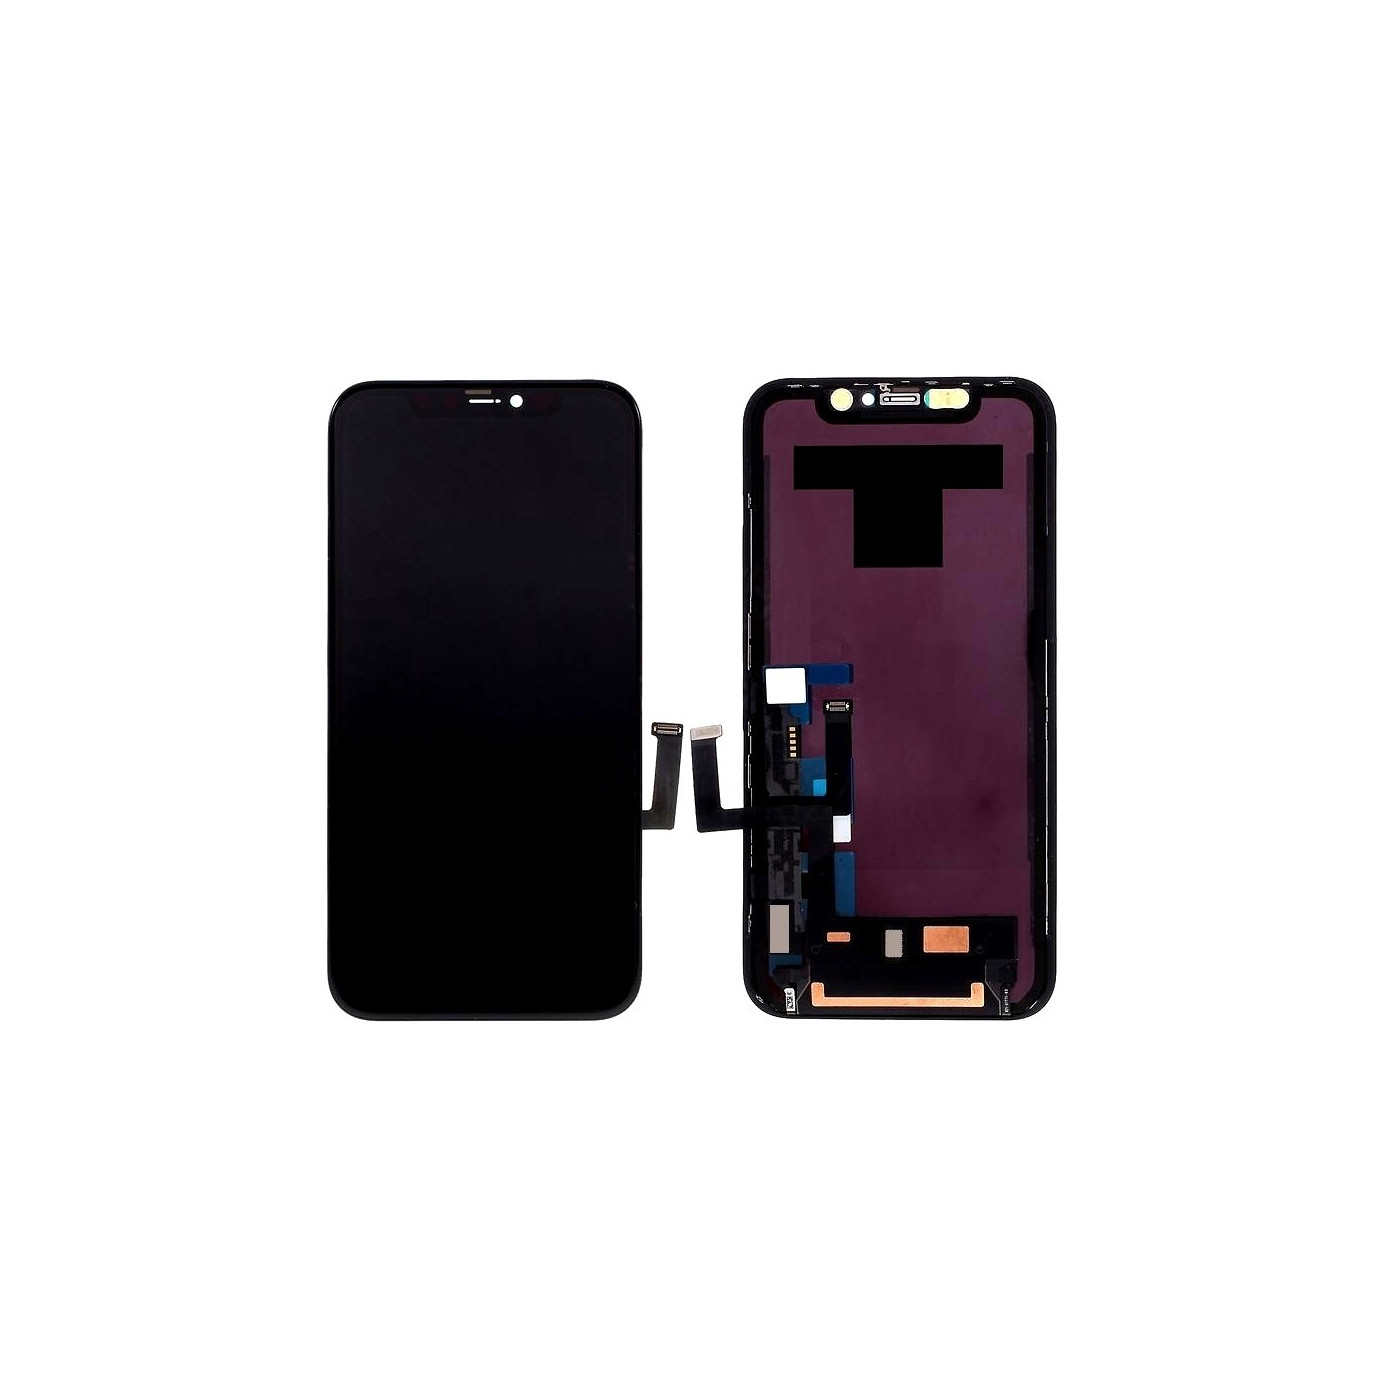 LCD DISPLAY FRAME FOR APPLE IPHONE 11 TOUCH SCREEN GLASS SCREEN